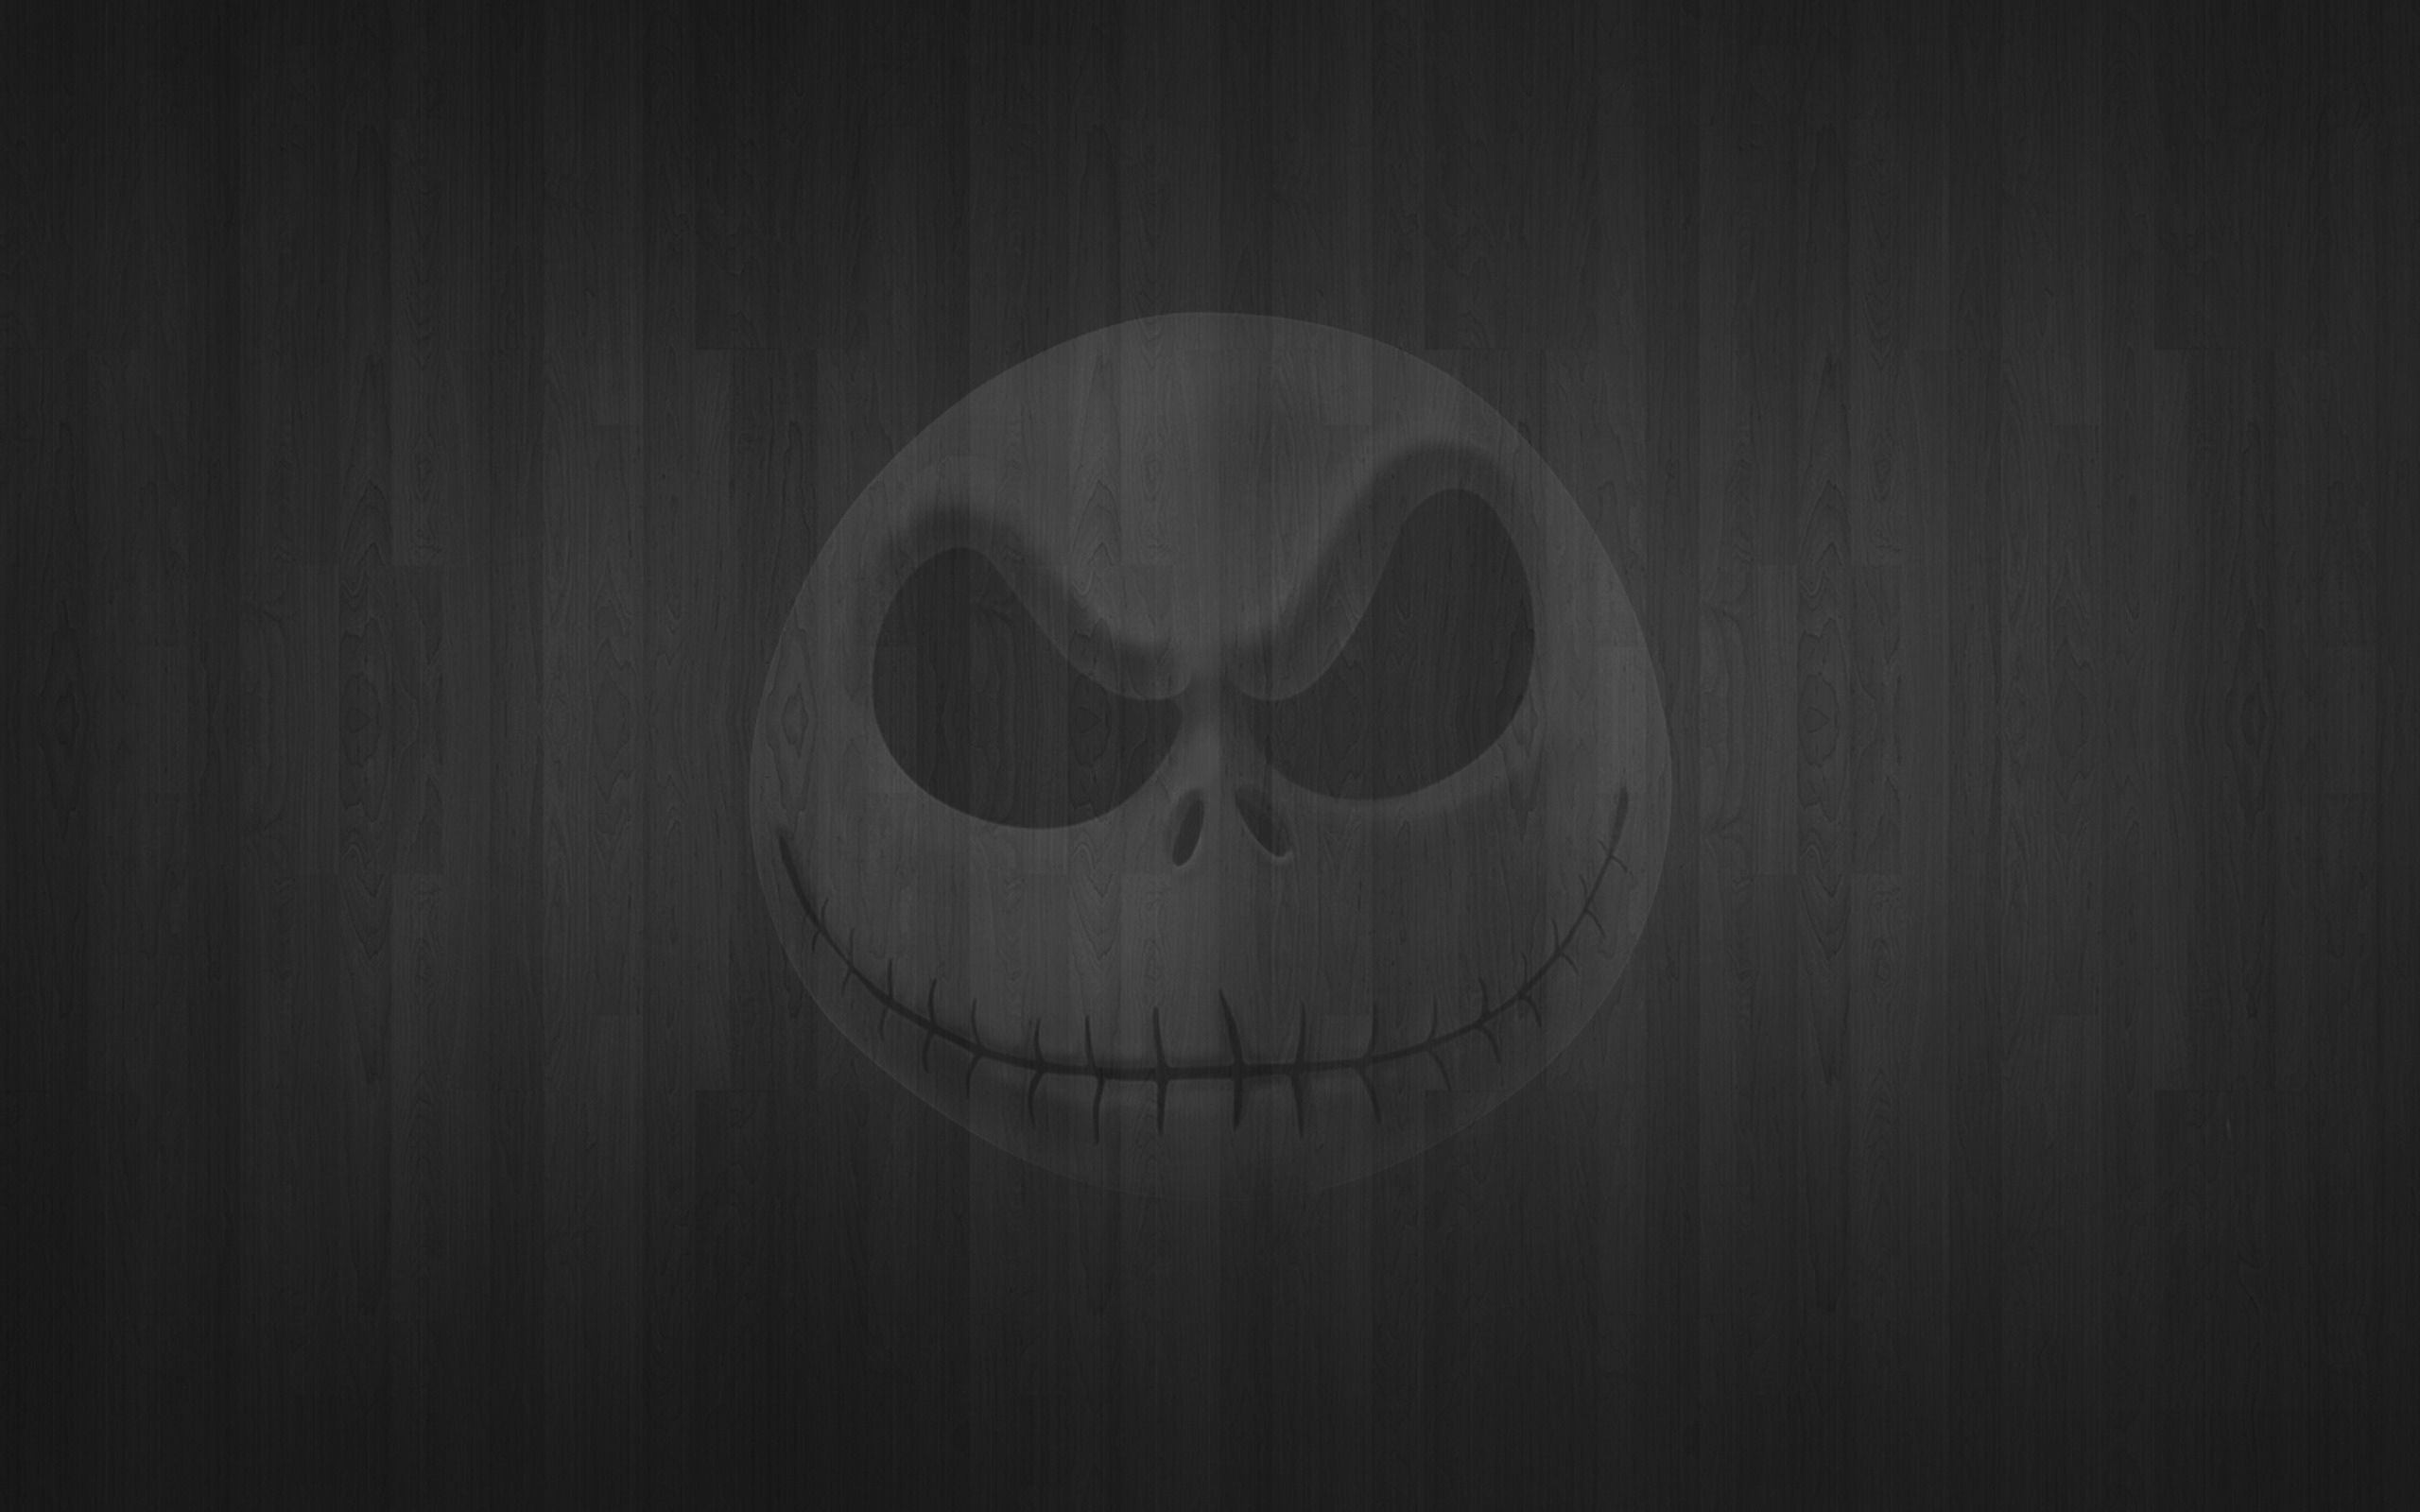 124871 download wallpaper Background, Smile, Head, Jack screensavers and pictures for free